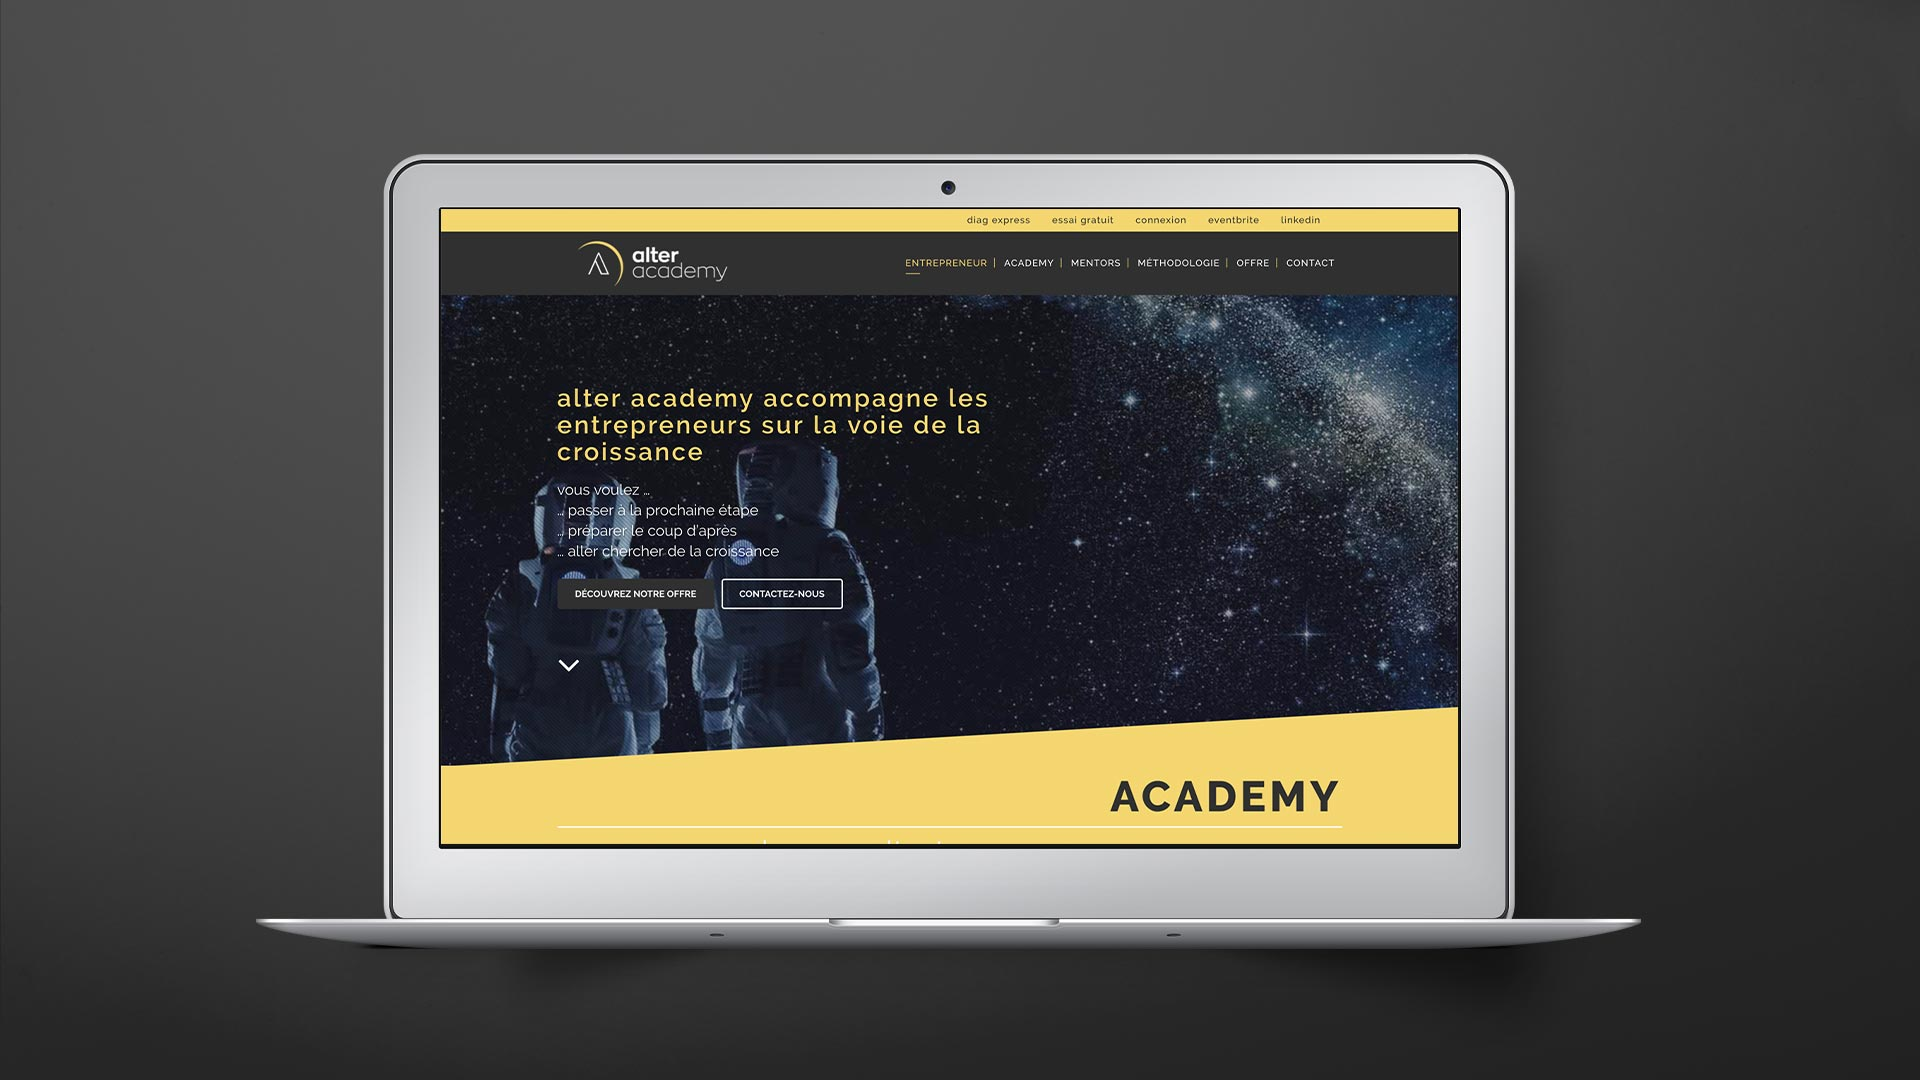 alter academy site web